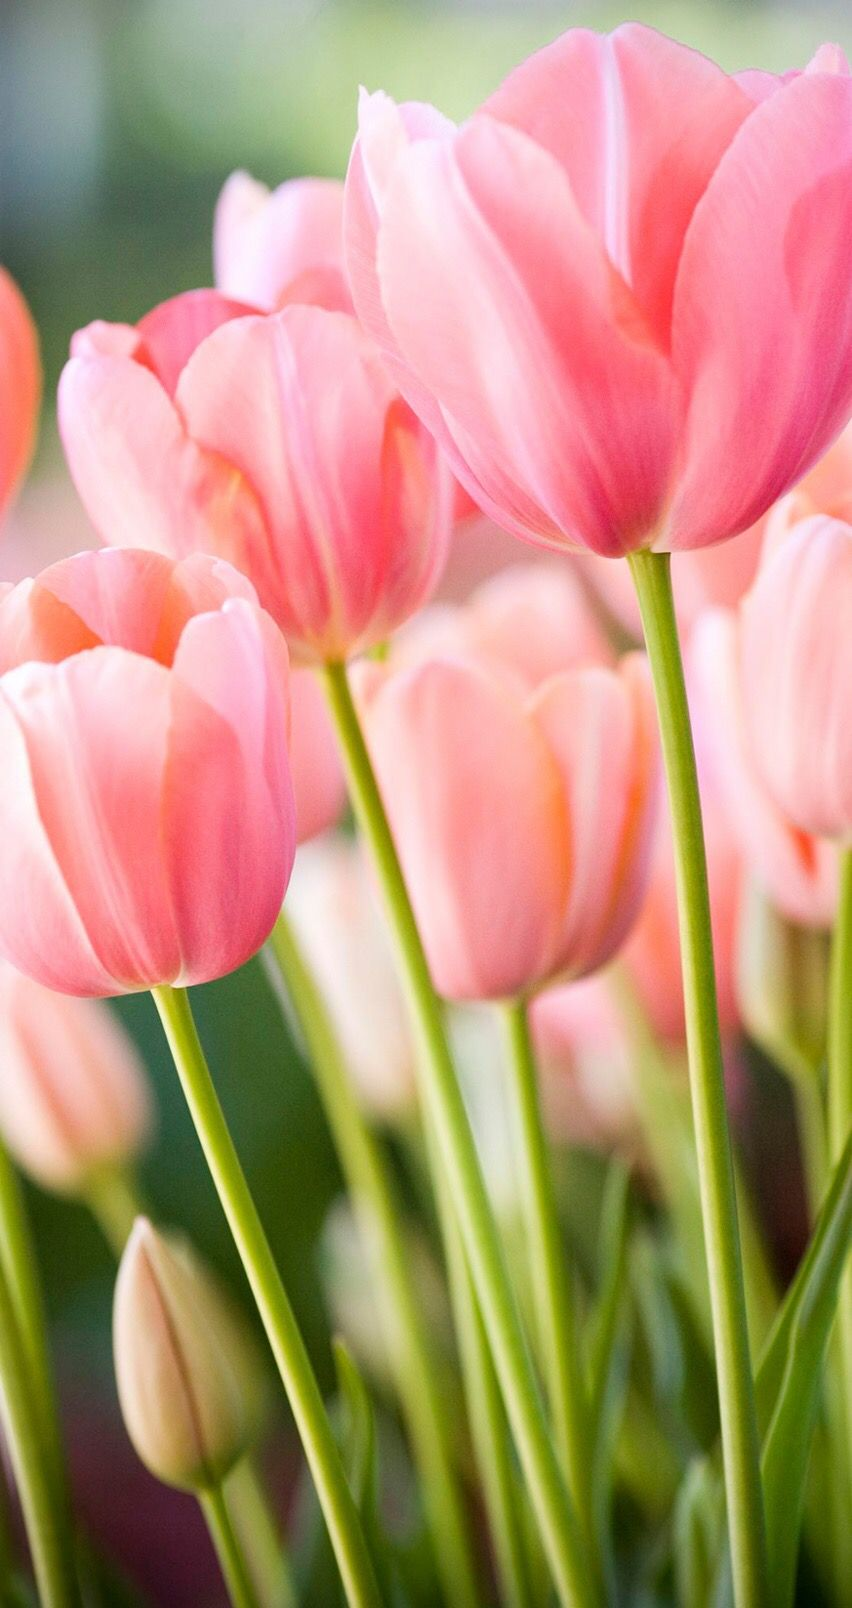 Pin by Ketsairy on Iphone Wallpapers Tulip bouquet